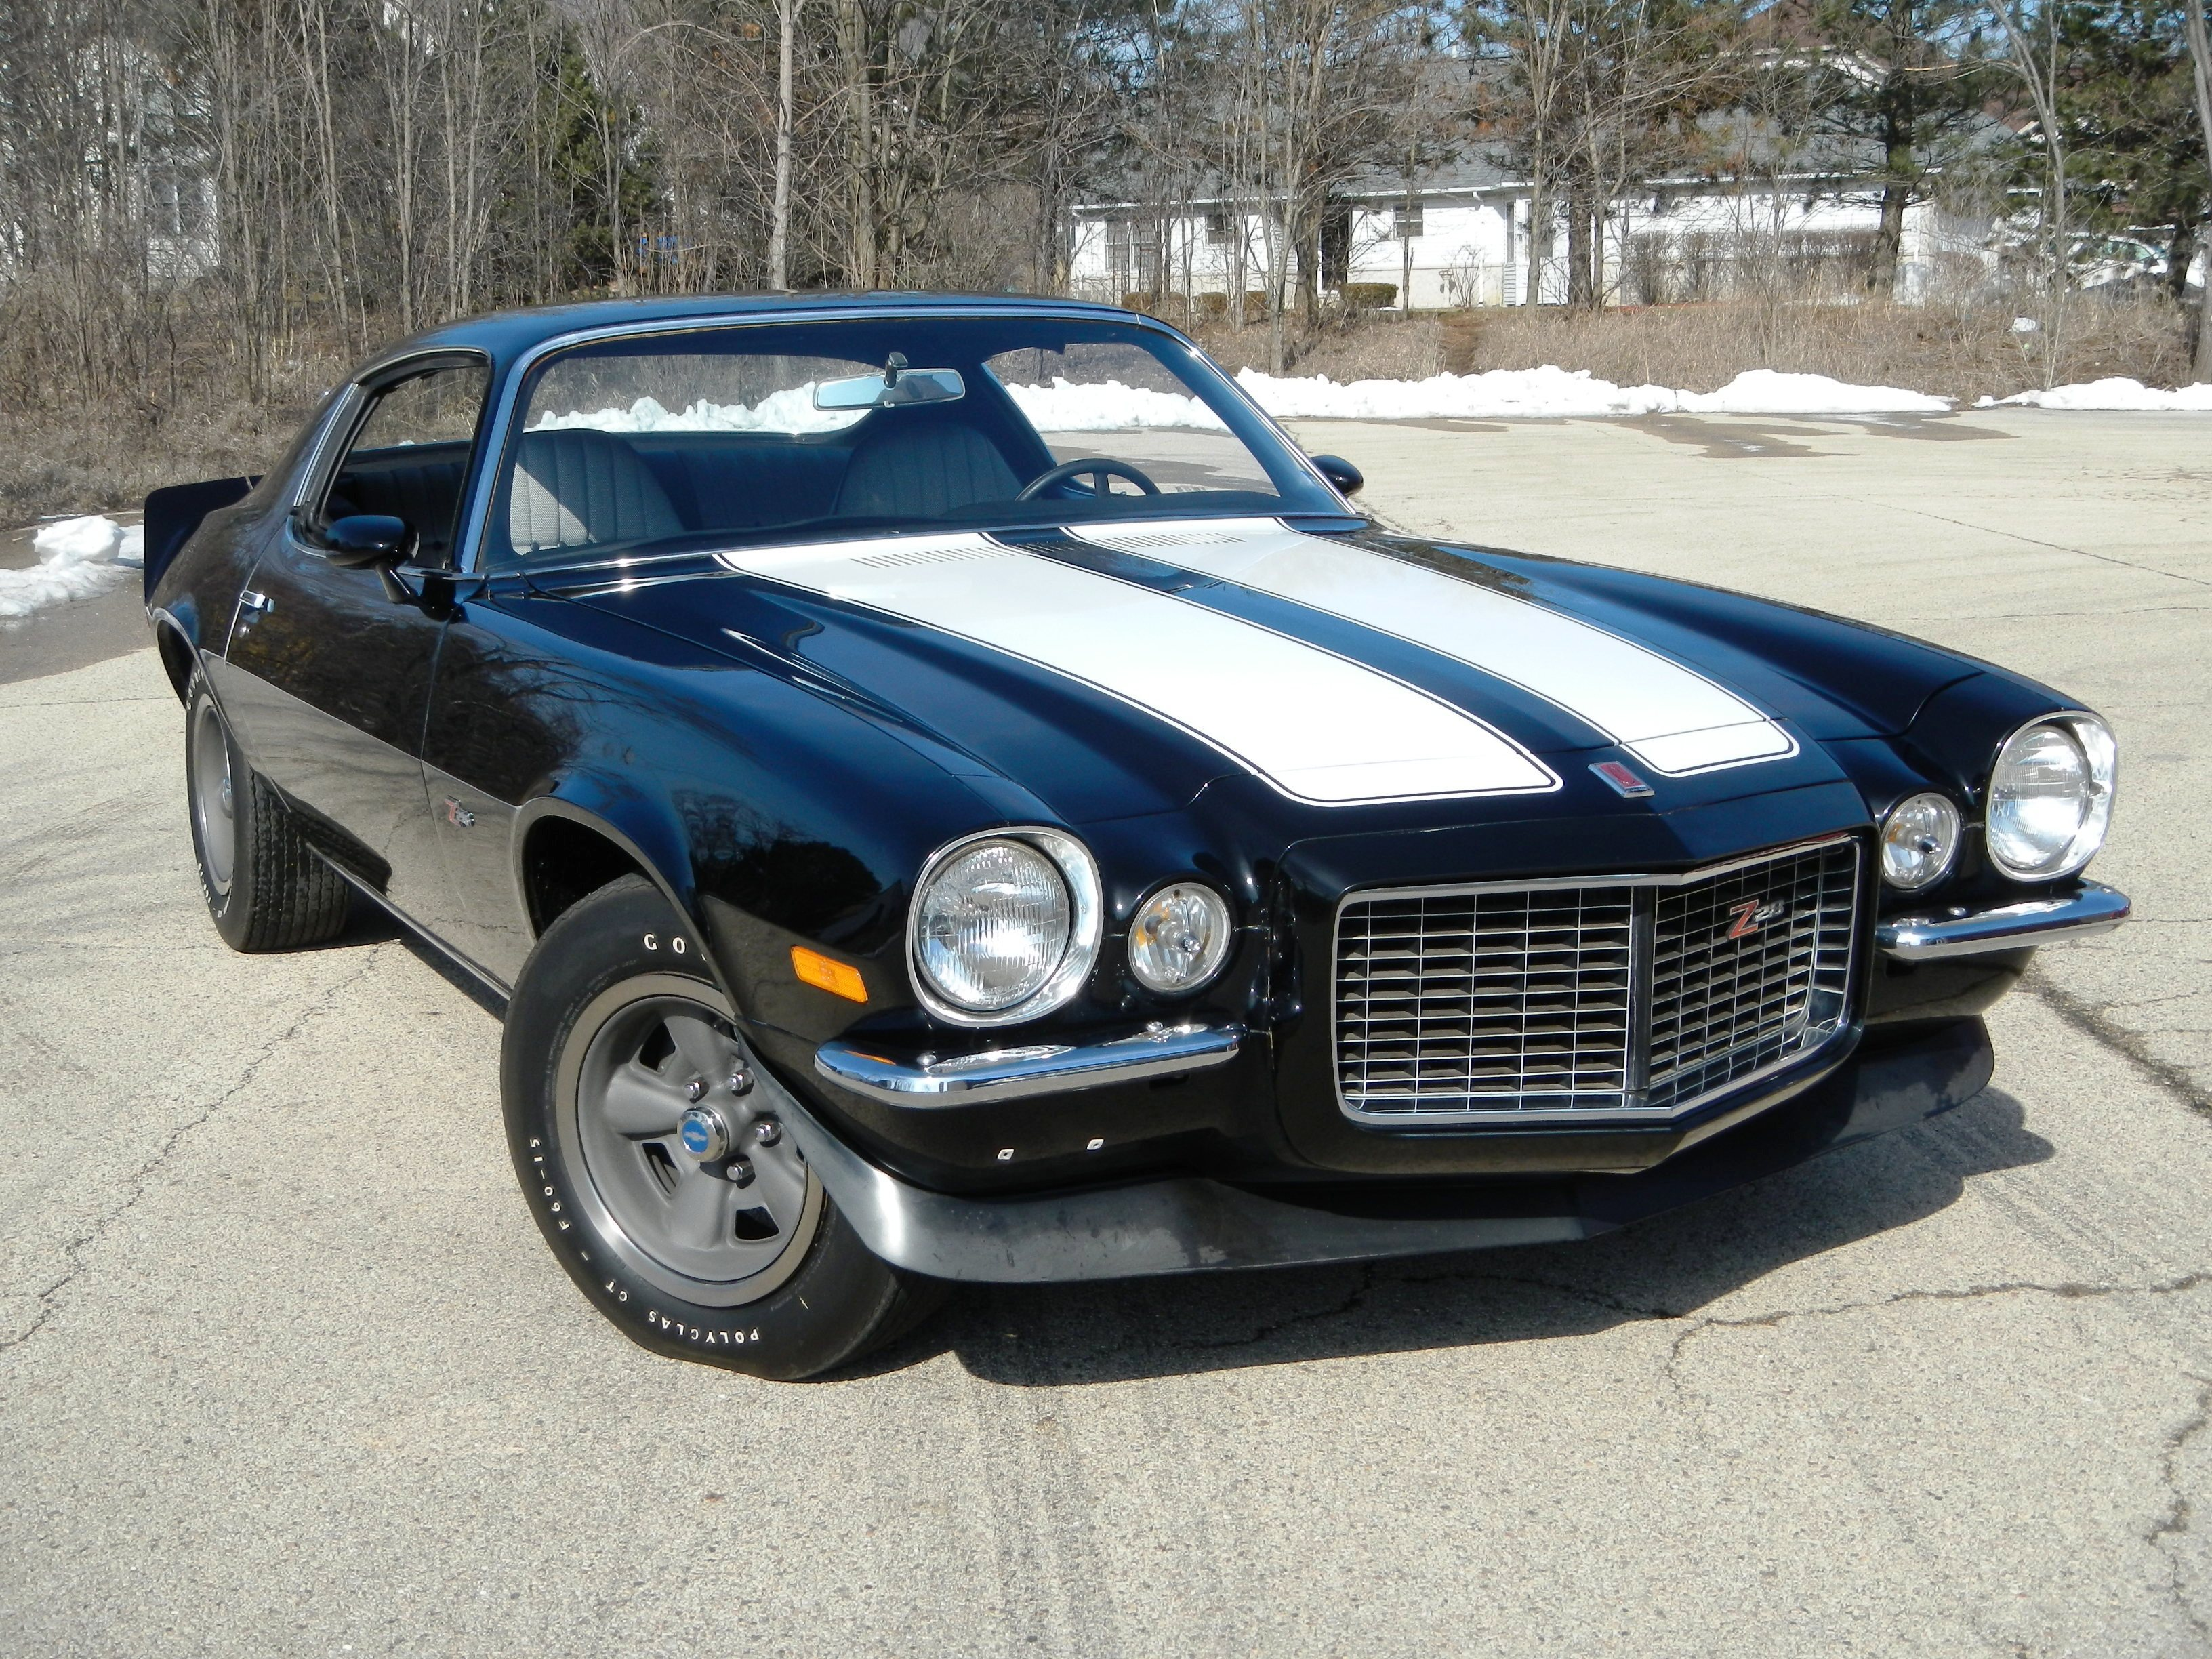 Used Chevrolet Camaro Z28 Coupe RWD For Sale in   CarGurus